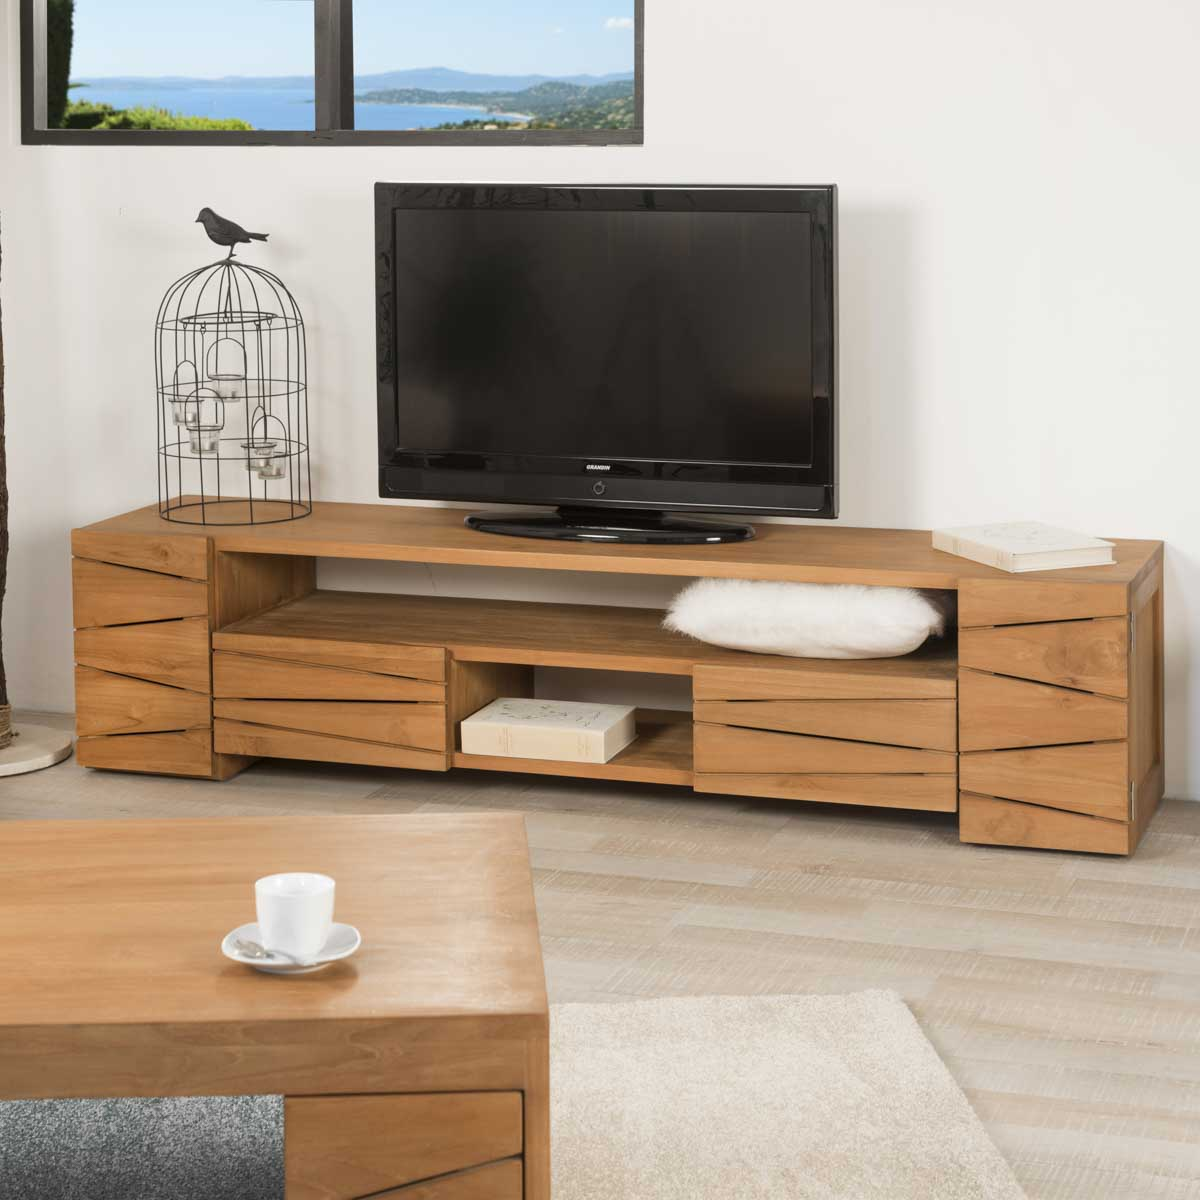 Meuble tv teck meuble tv bois naturel rectangle for Table pour tv